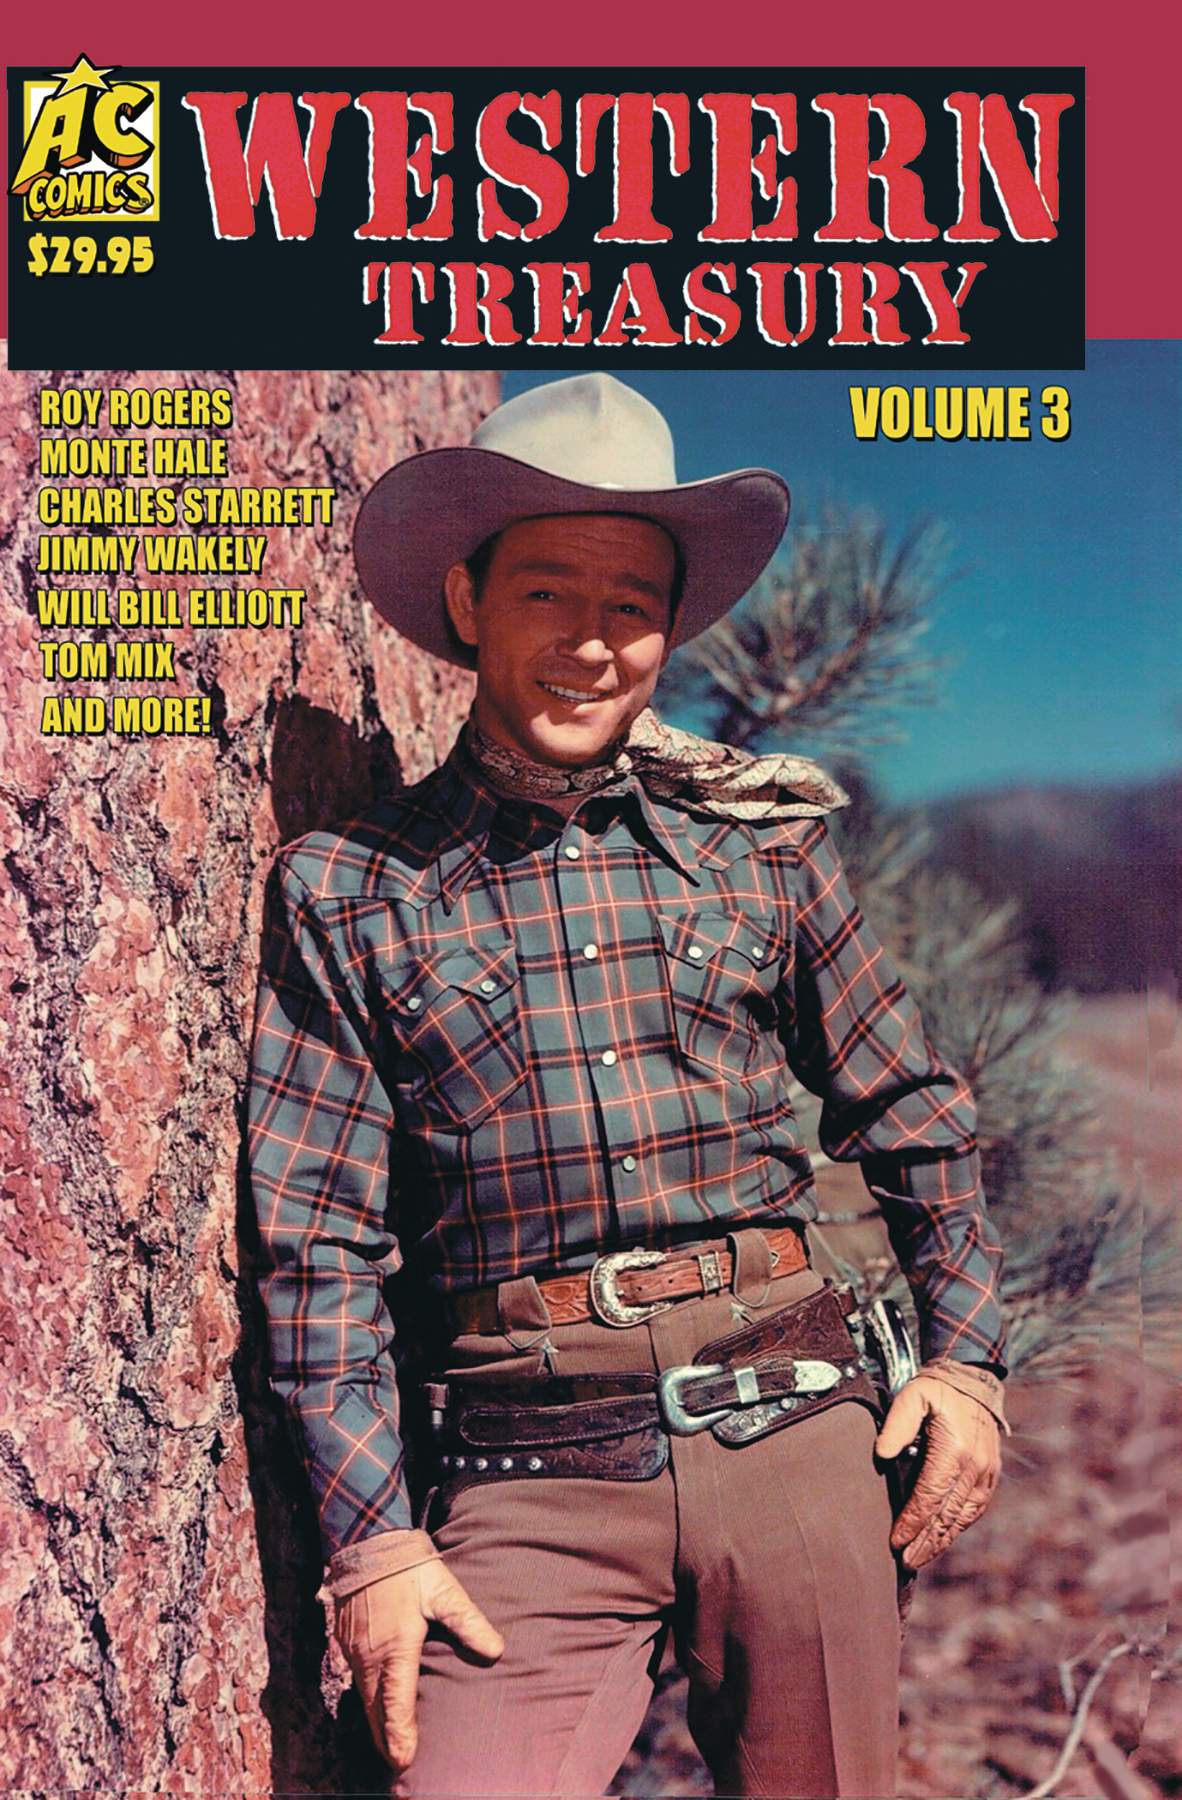 WESTERN TREASURY VOL 03